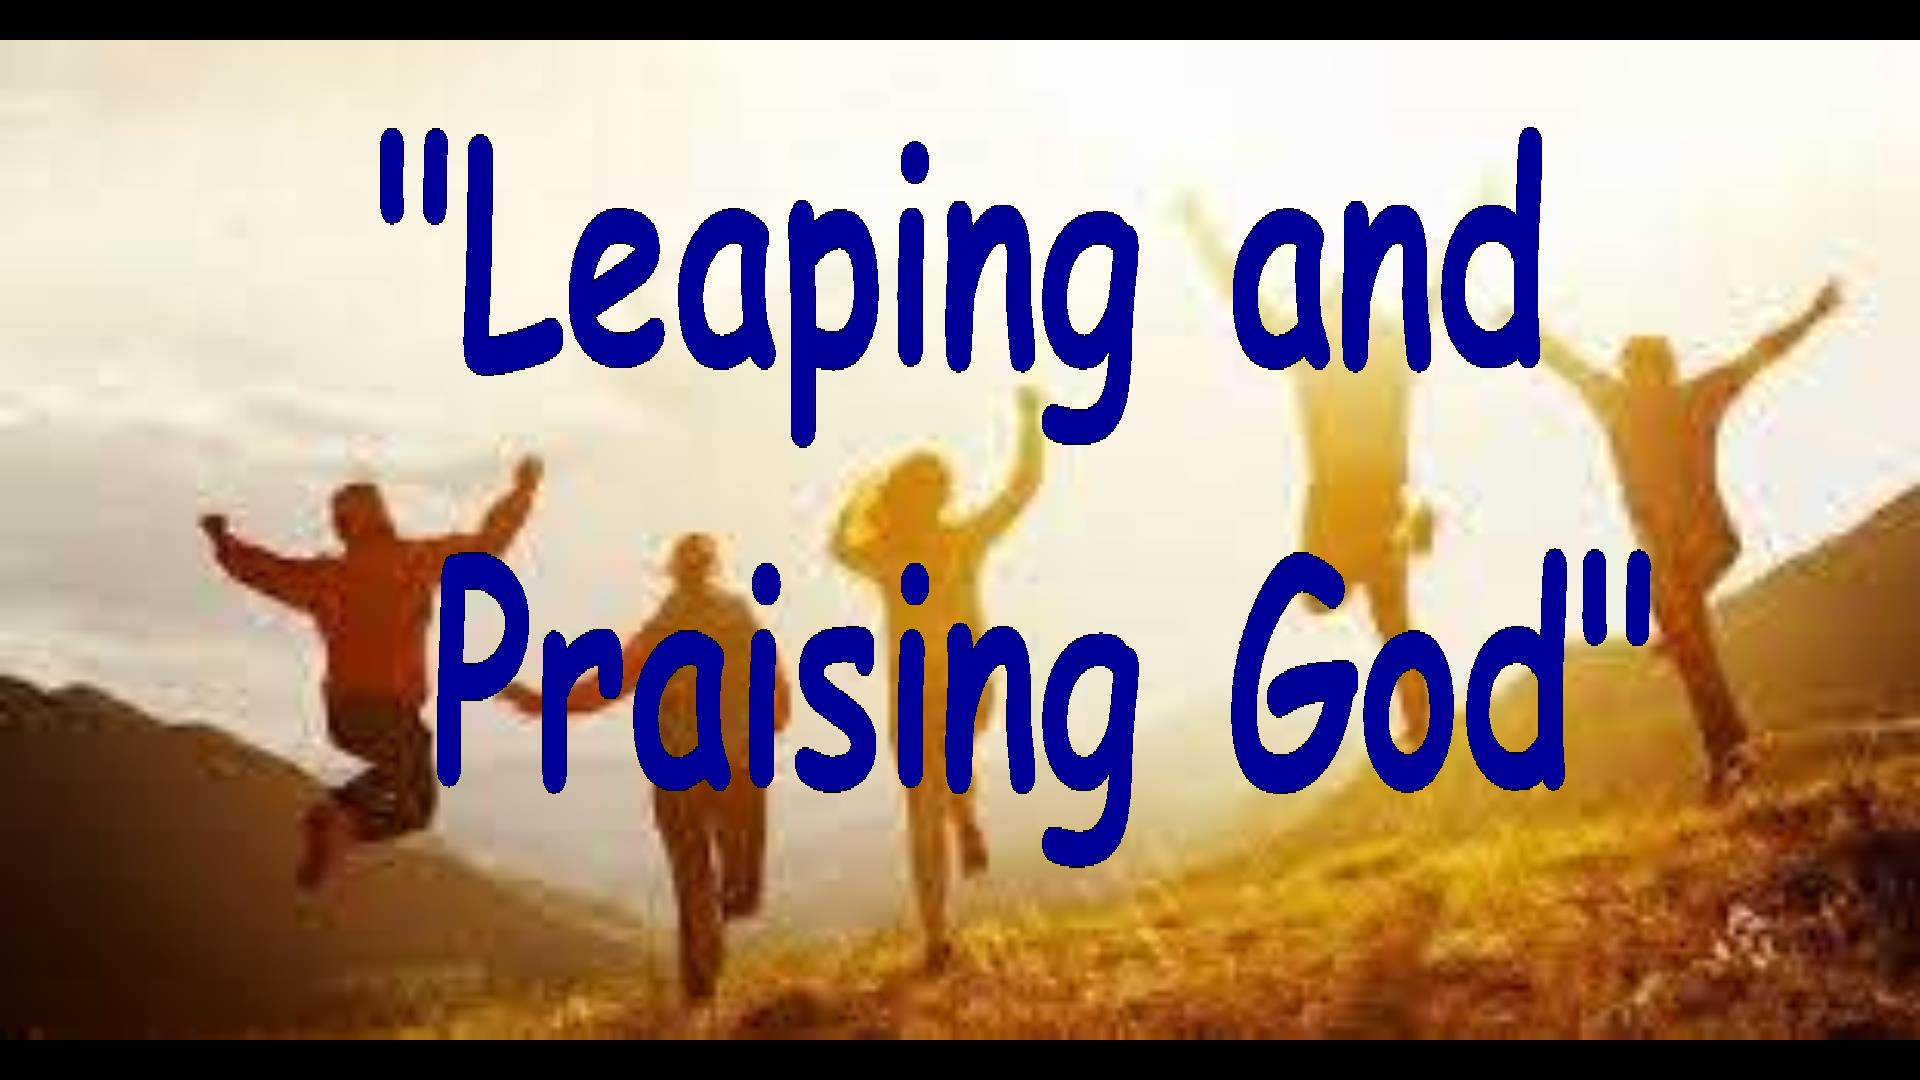 Leaping and Praising God